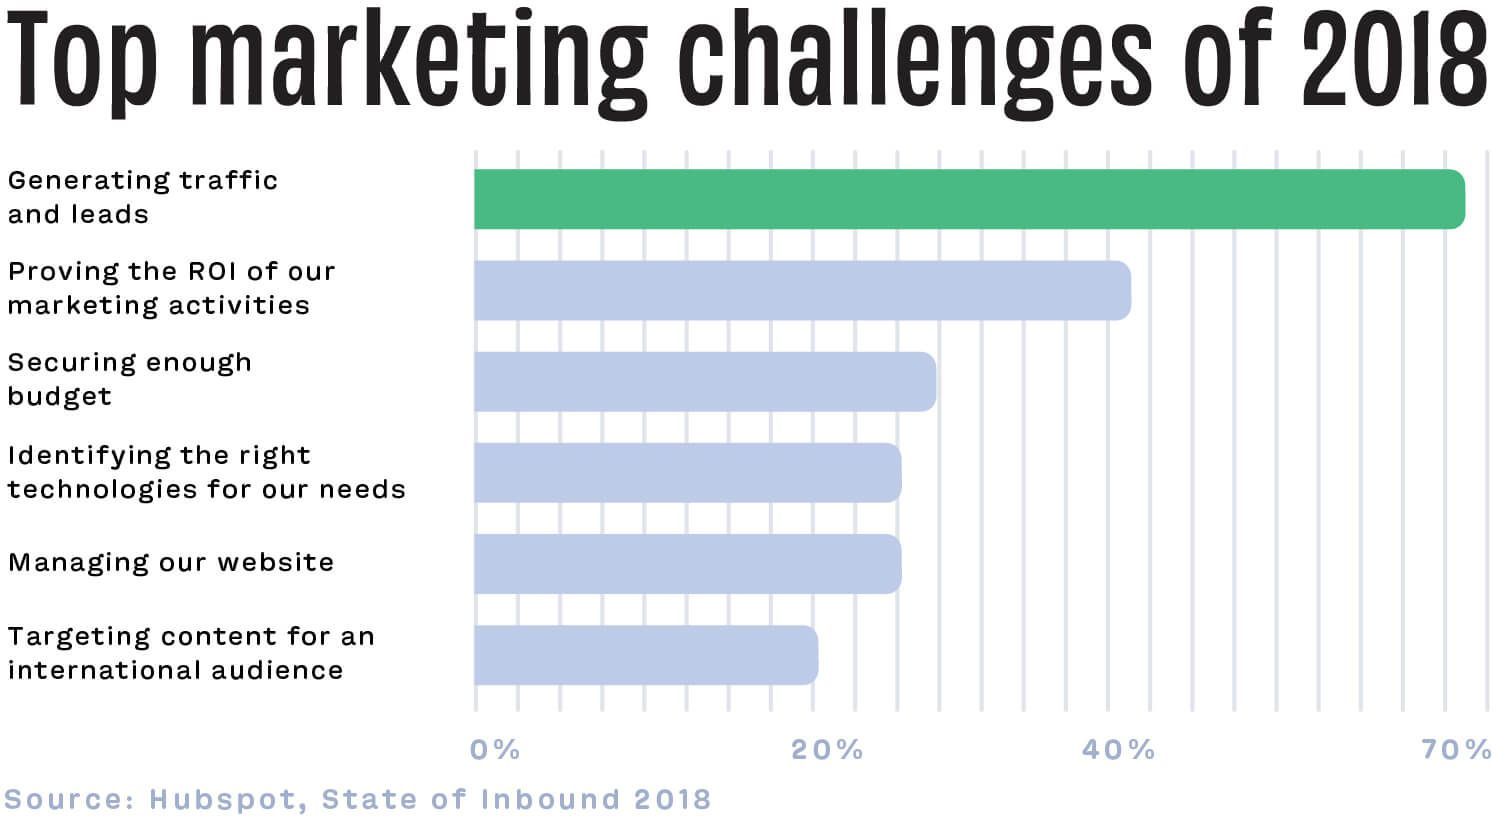 Top marketing challenges of 2018 - generating more traffic and leads